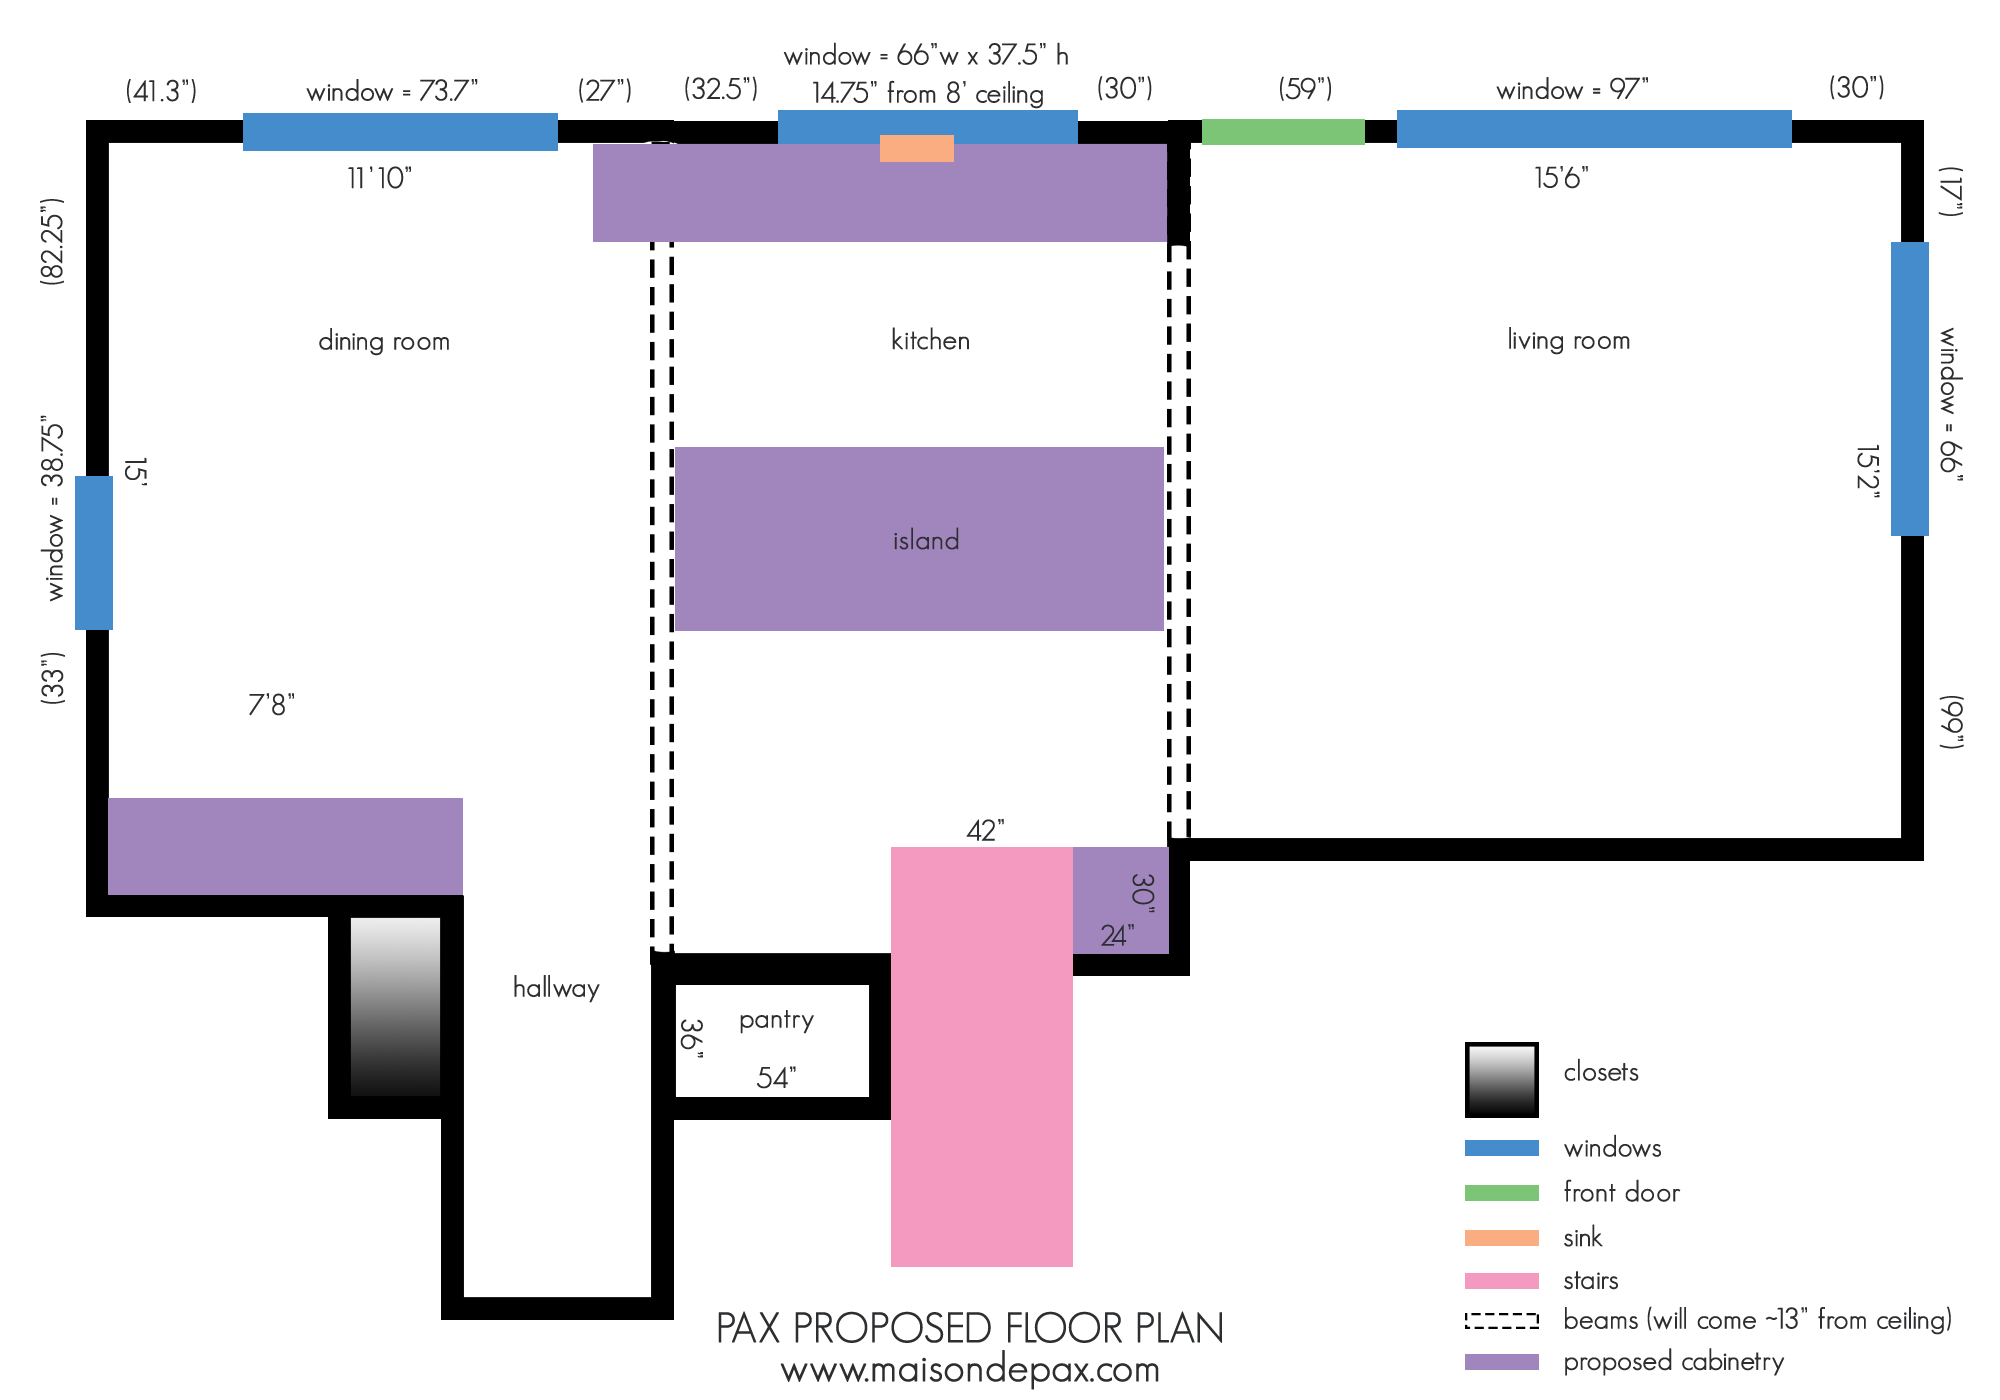 proposed floor plans for ranch kitchen renovation | Maison de Pax